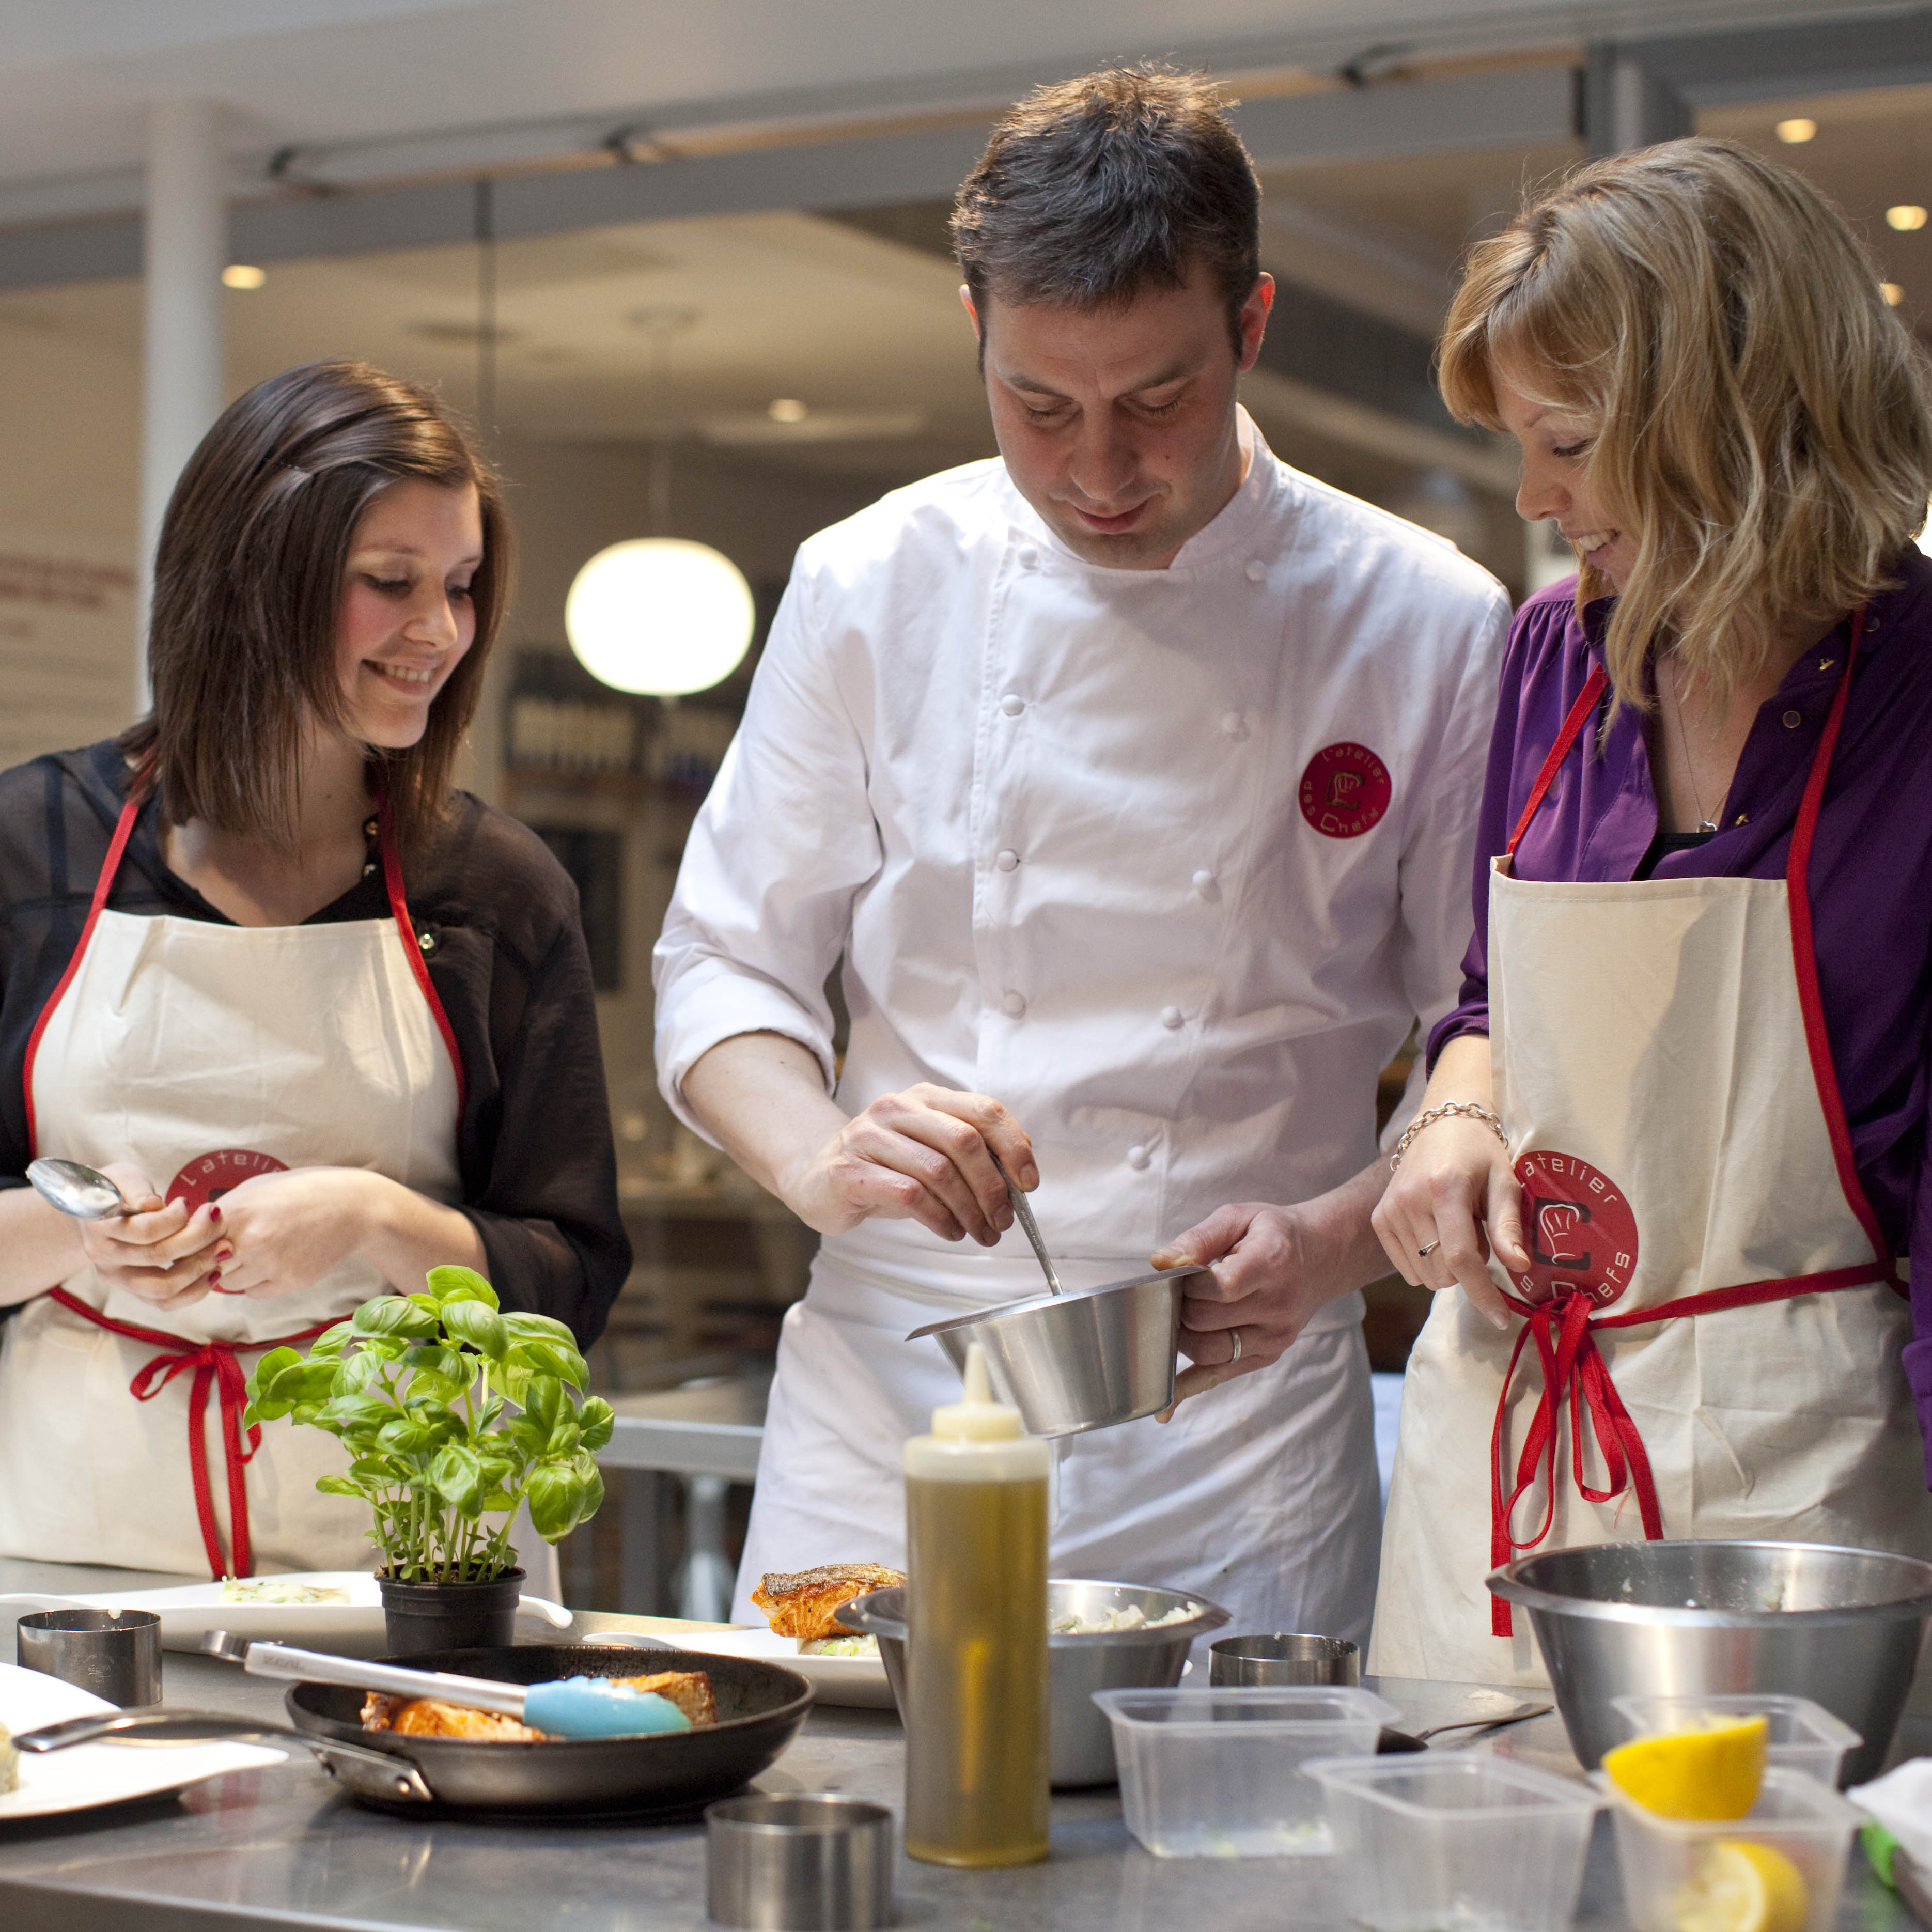 Decode French cuisine at Ateliers des Chefs